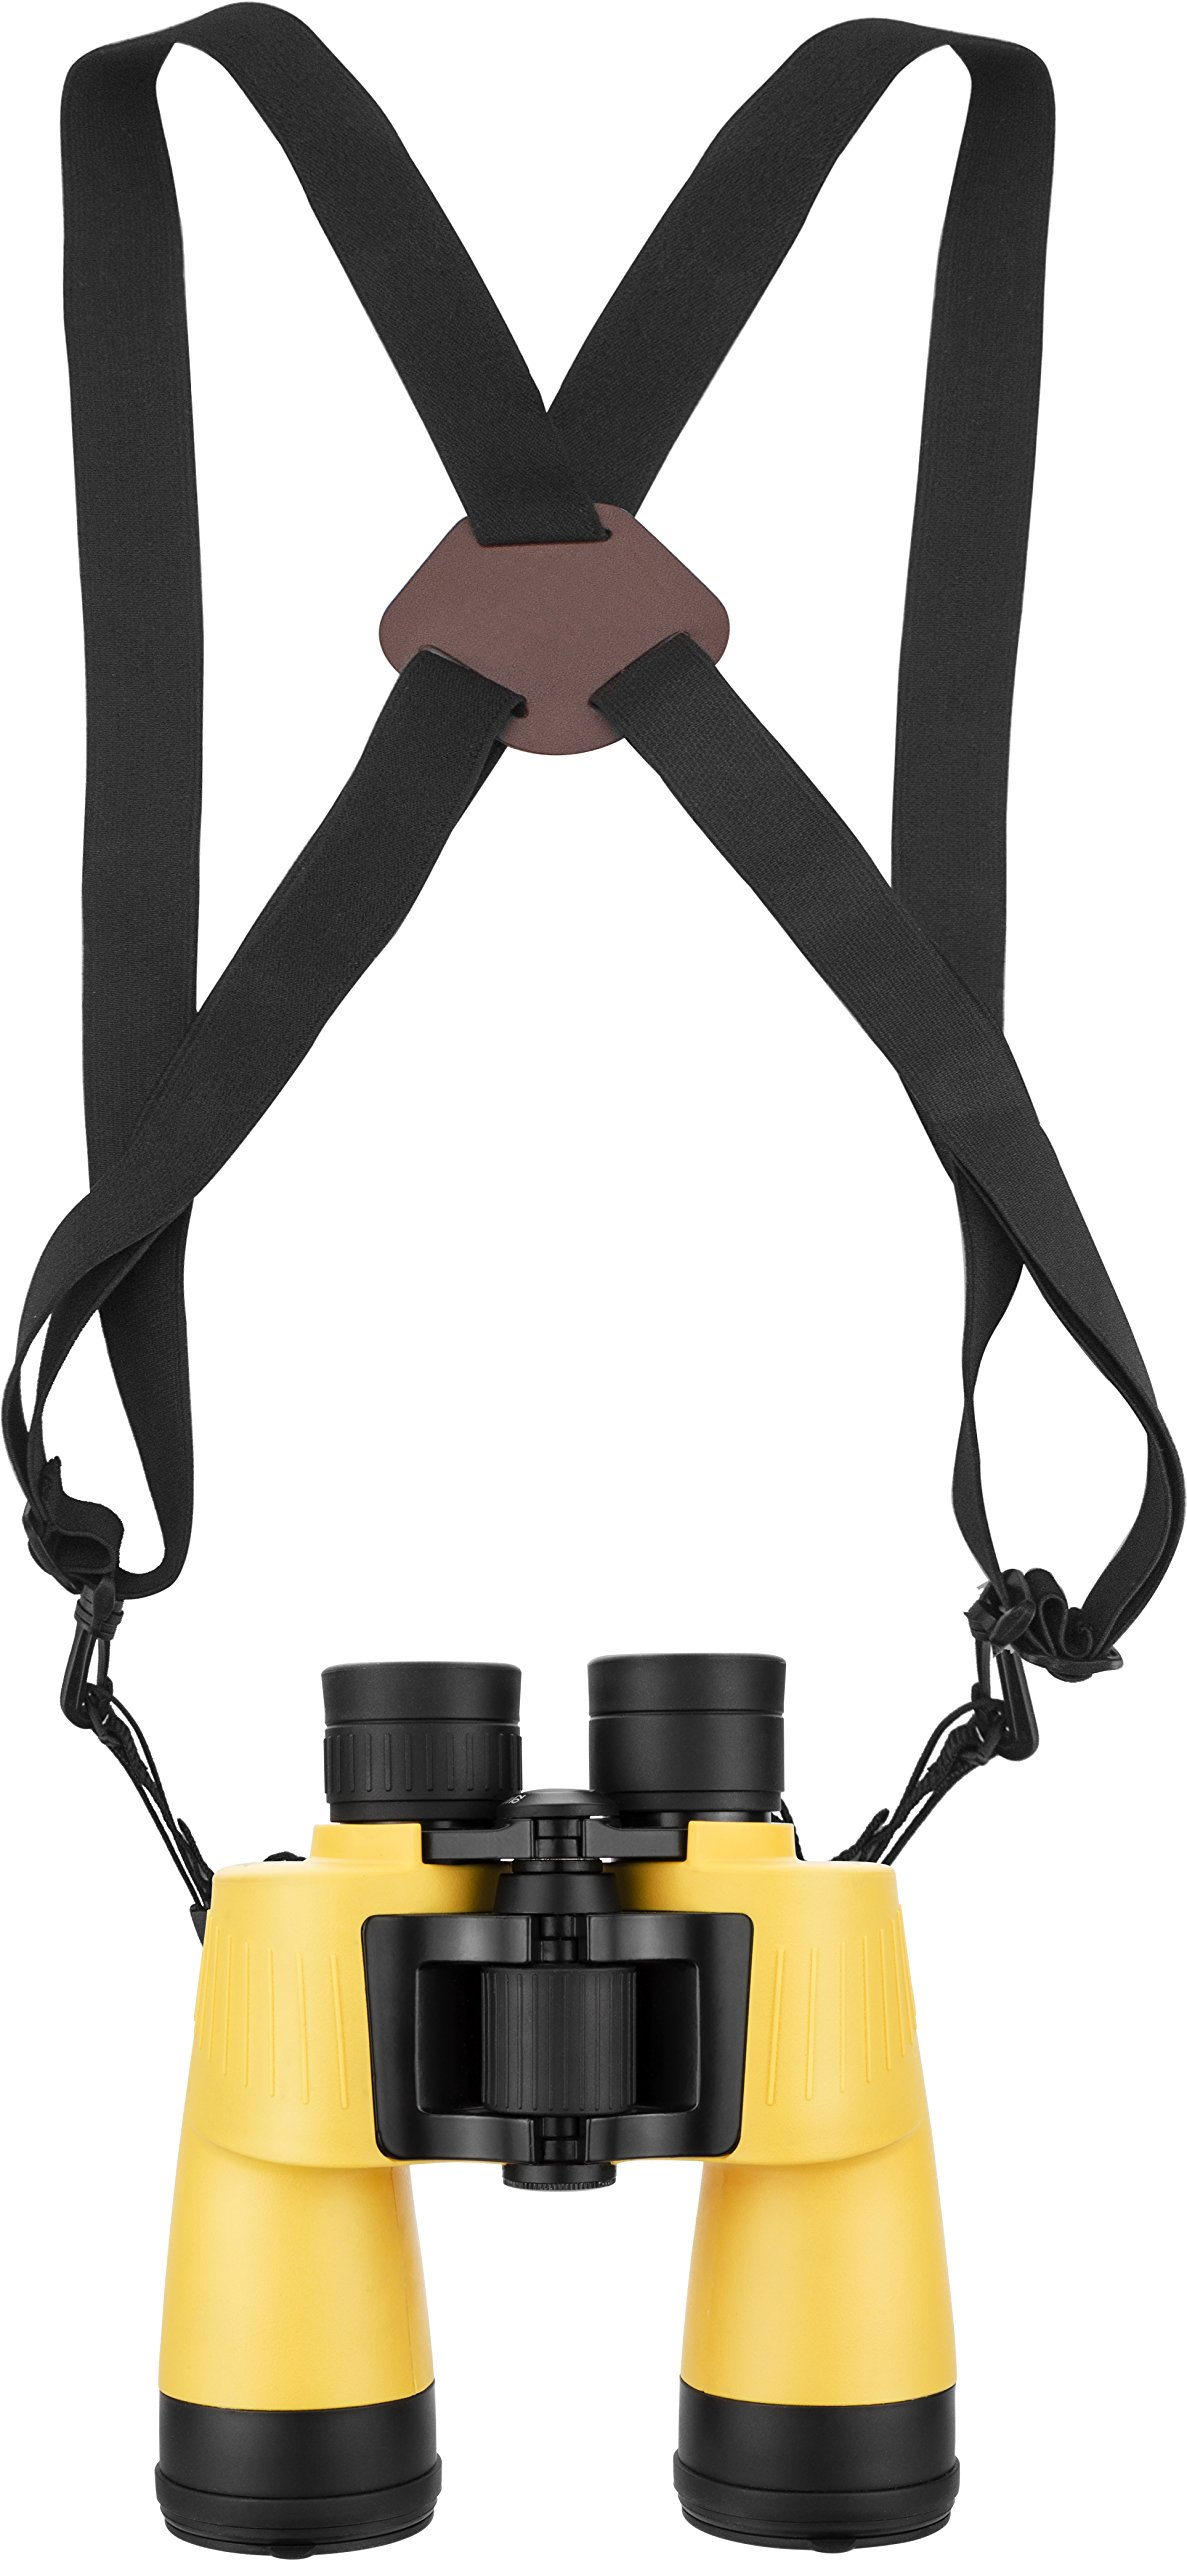 WinBest Optic Binocular Harness Strap Quick Release Adjustable